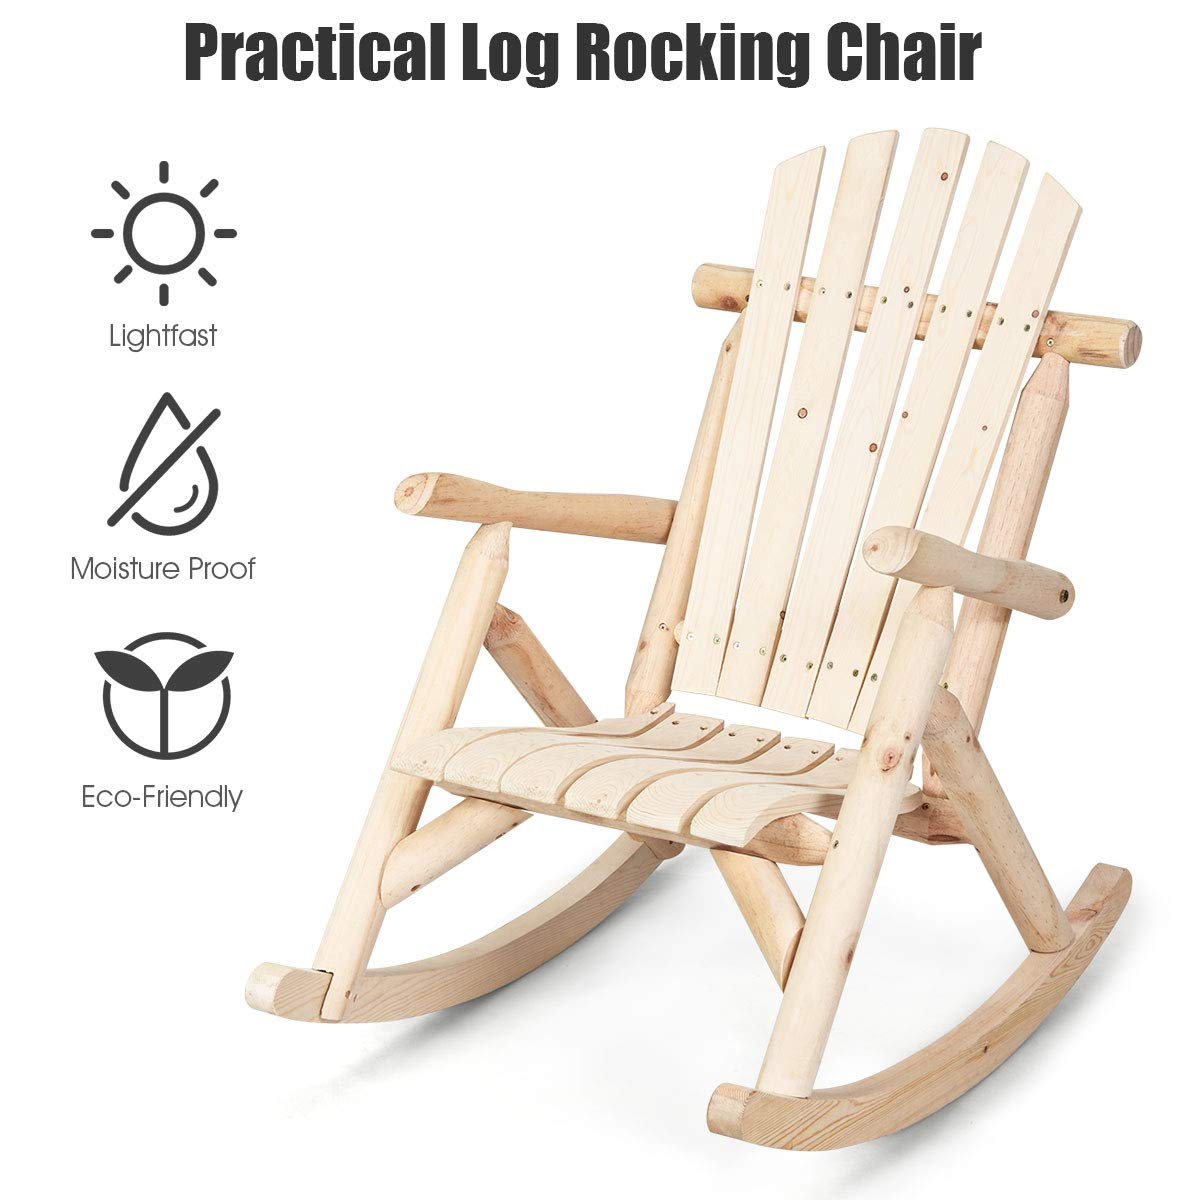 Giantex Log Rocking Chair Wood Porch Rocker Lounge Patio Deck Balcony Furniture Rustic Single Rocker Natural